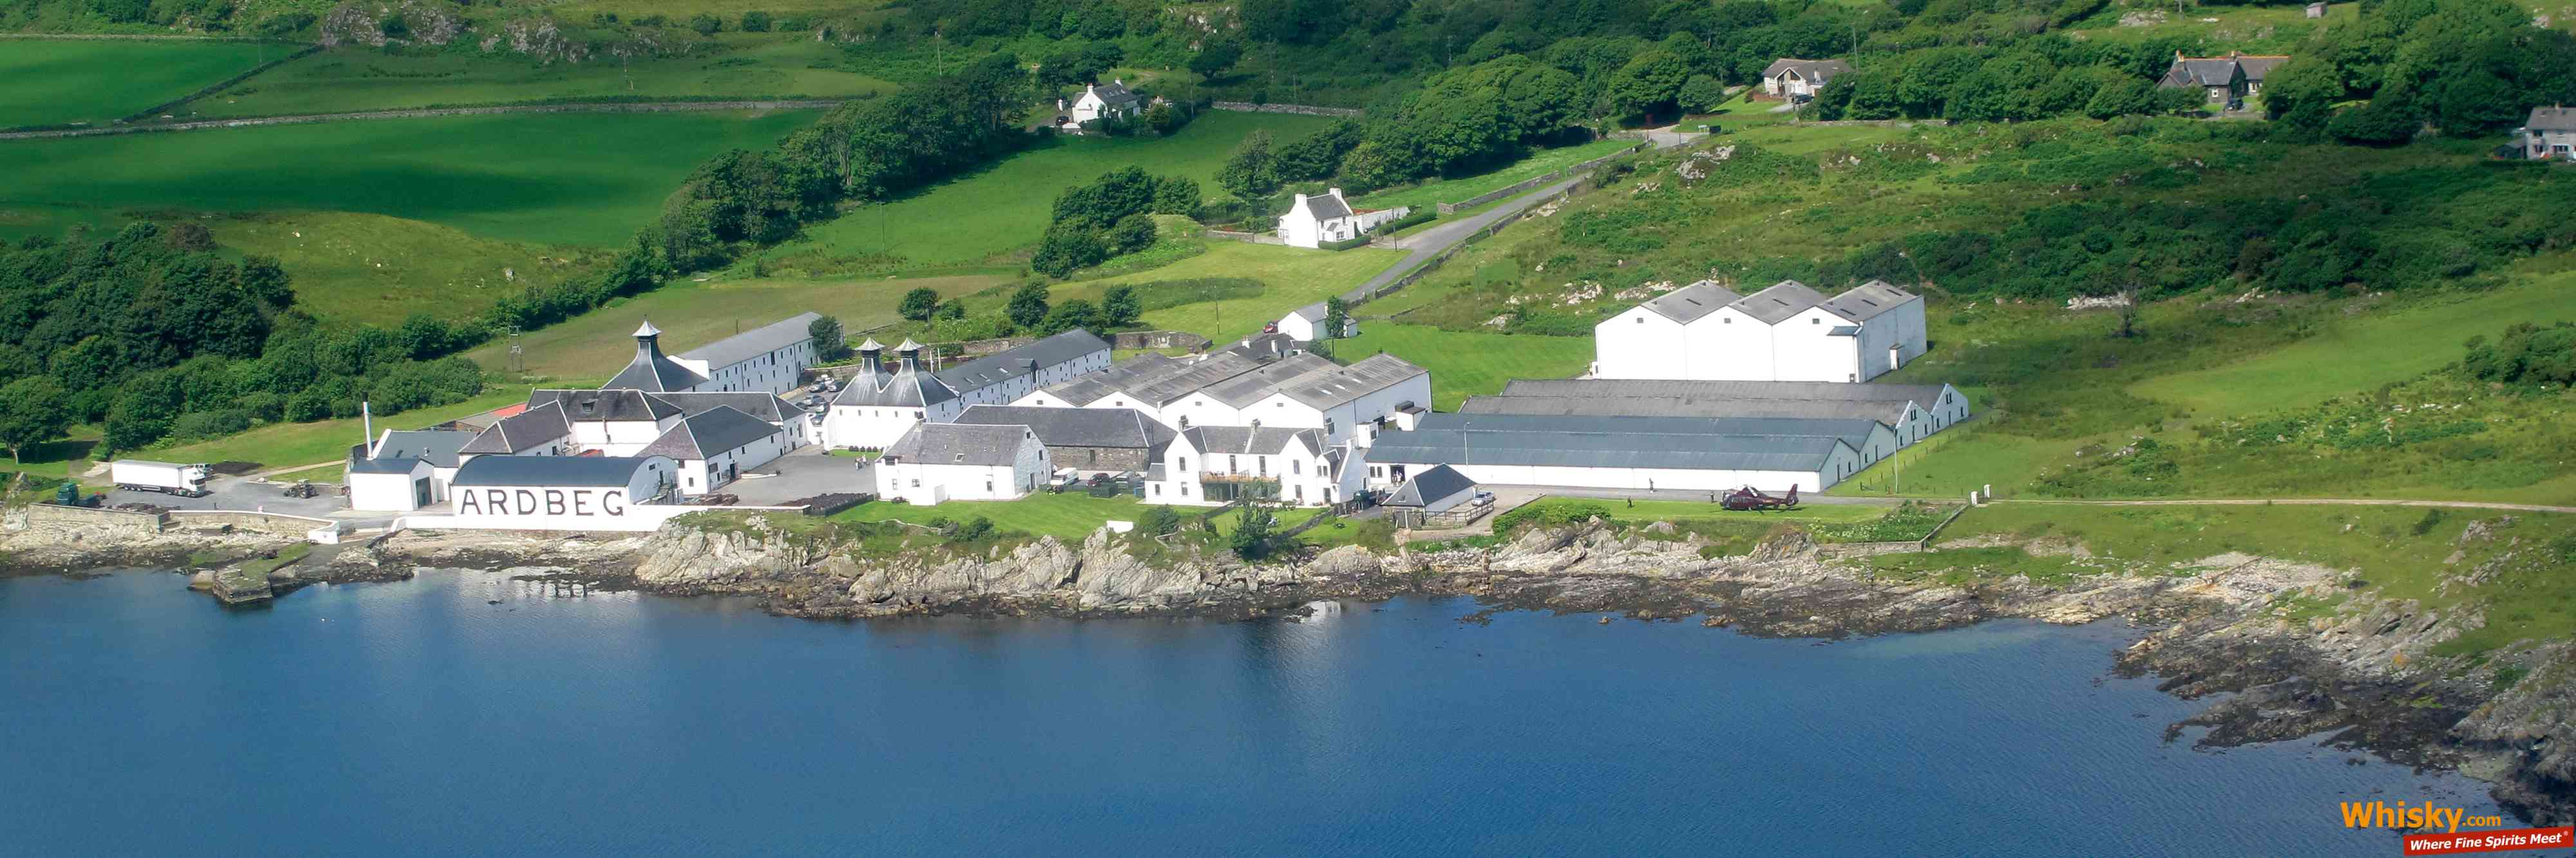 The Ardbeg distillery from Above